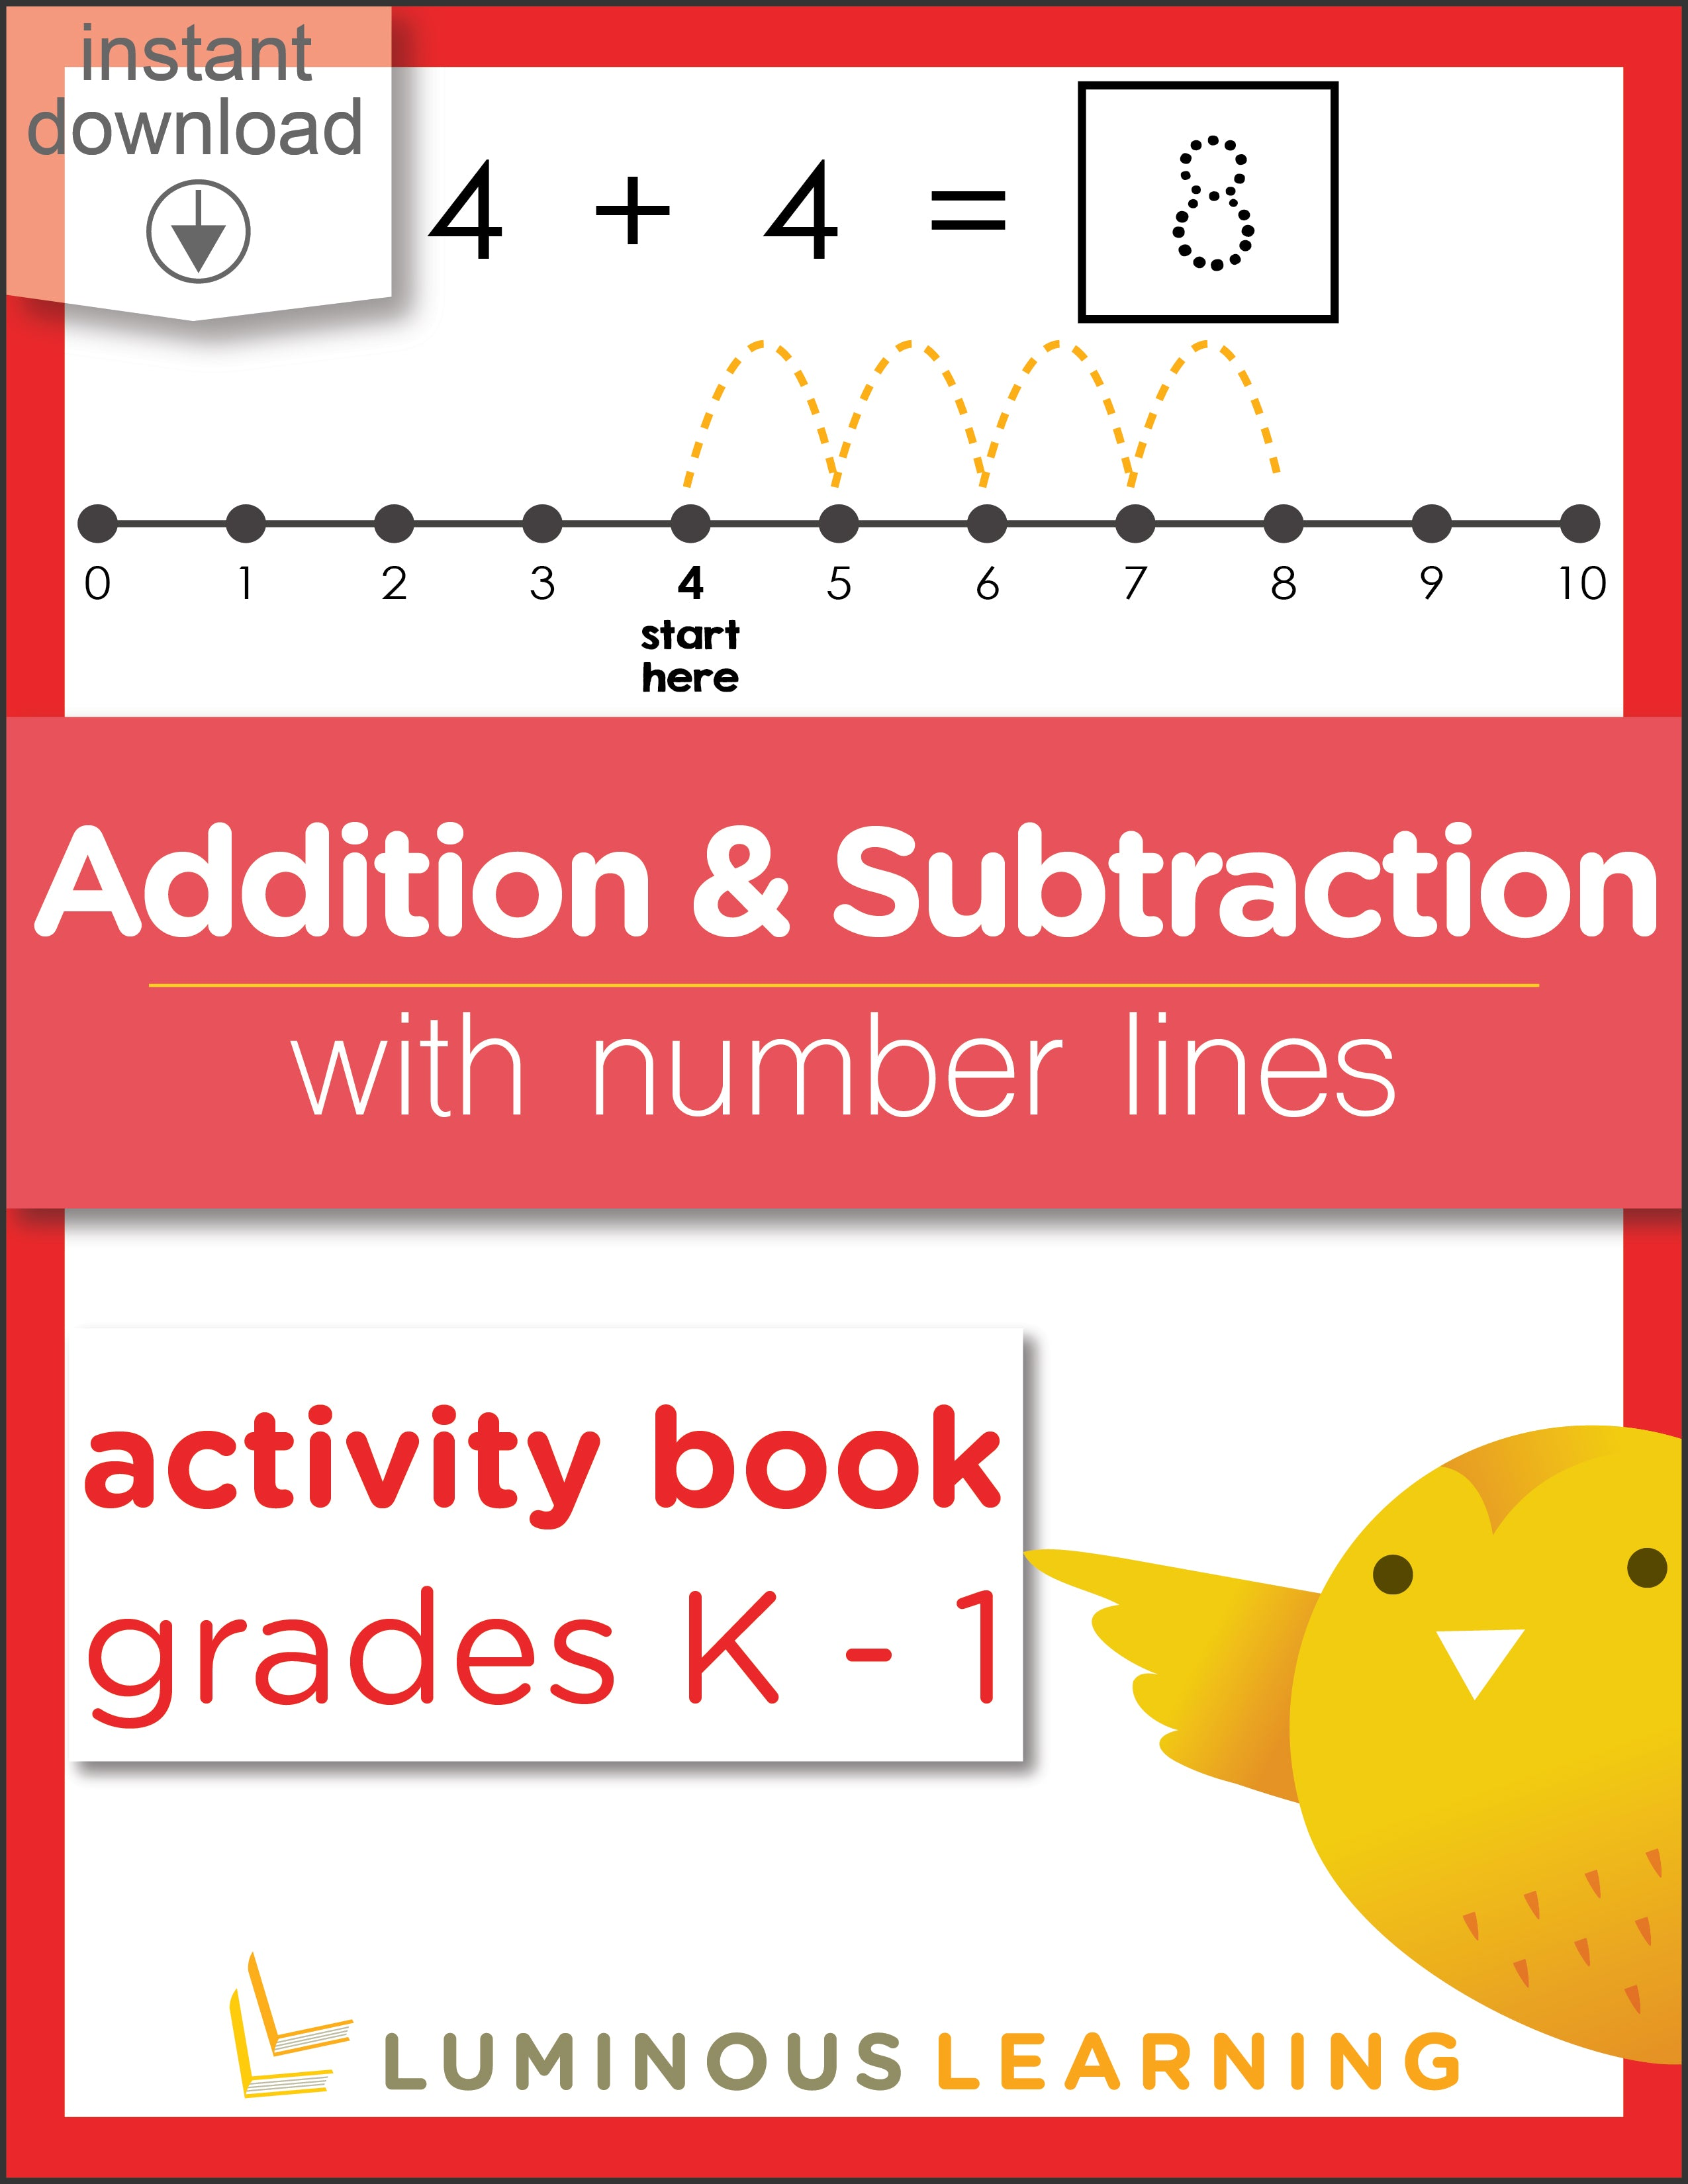 photo regarding Printable Number Line named Grades K - 1 Addition and Subtraction with Quantity Traces: Printable Math Pursuits